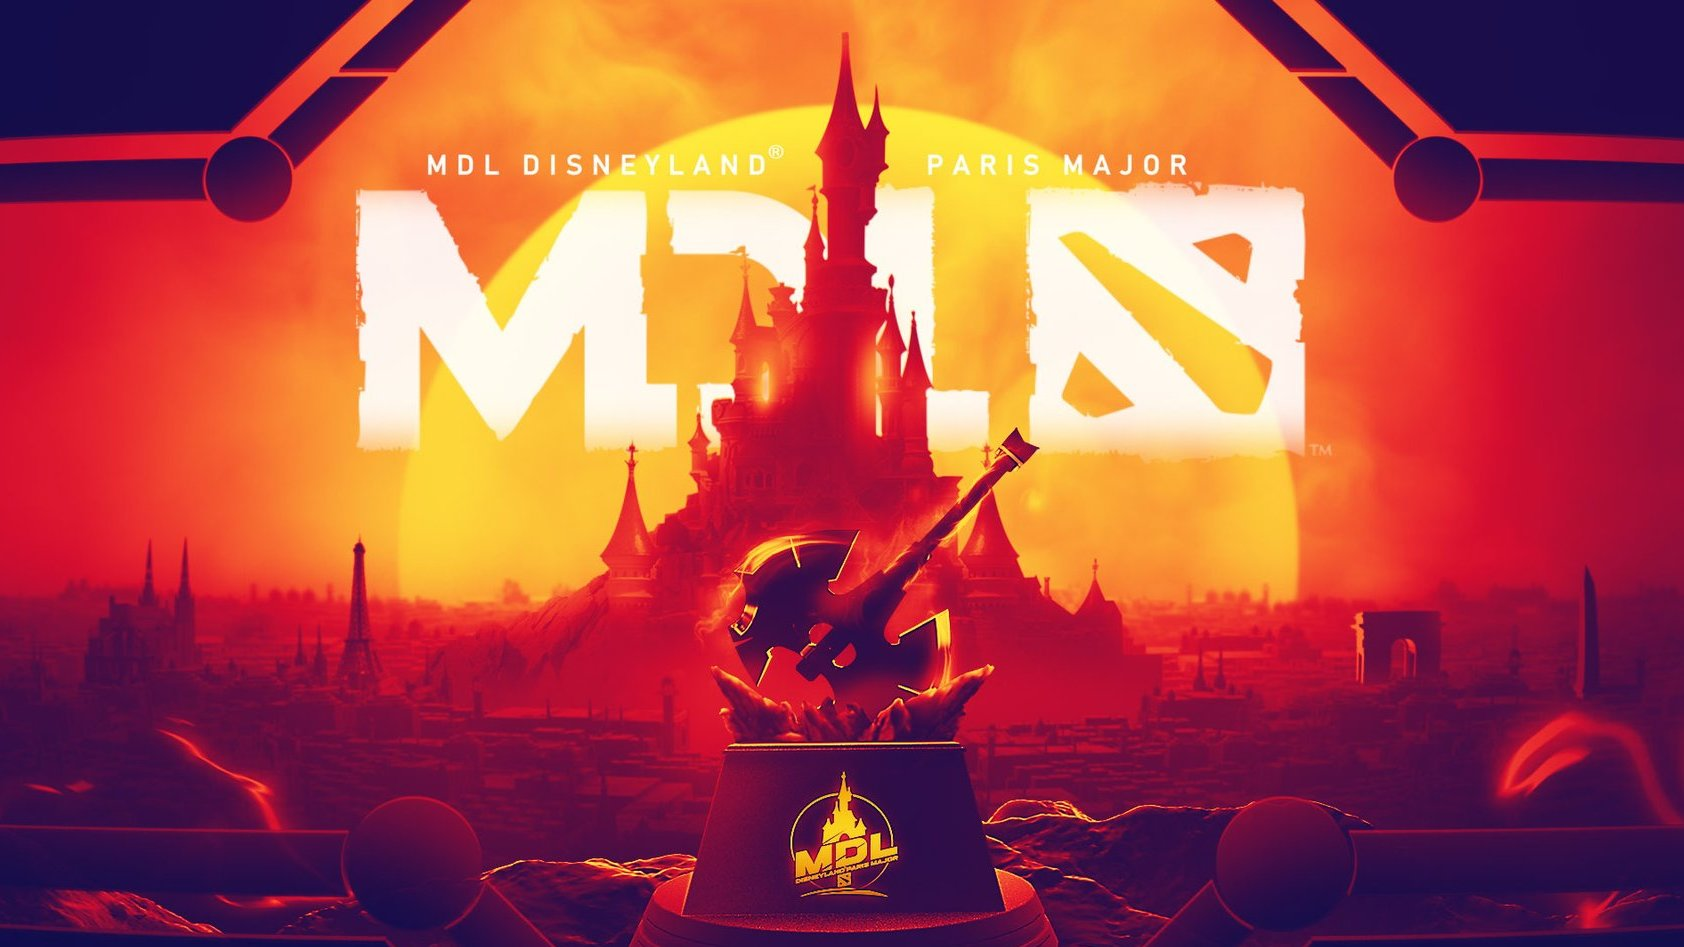 Dota 2 MDL Disneyland Paris Major: Everything You Need to Know